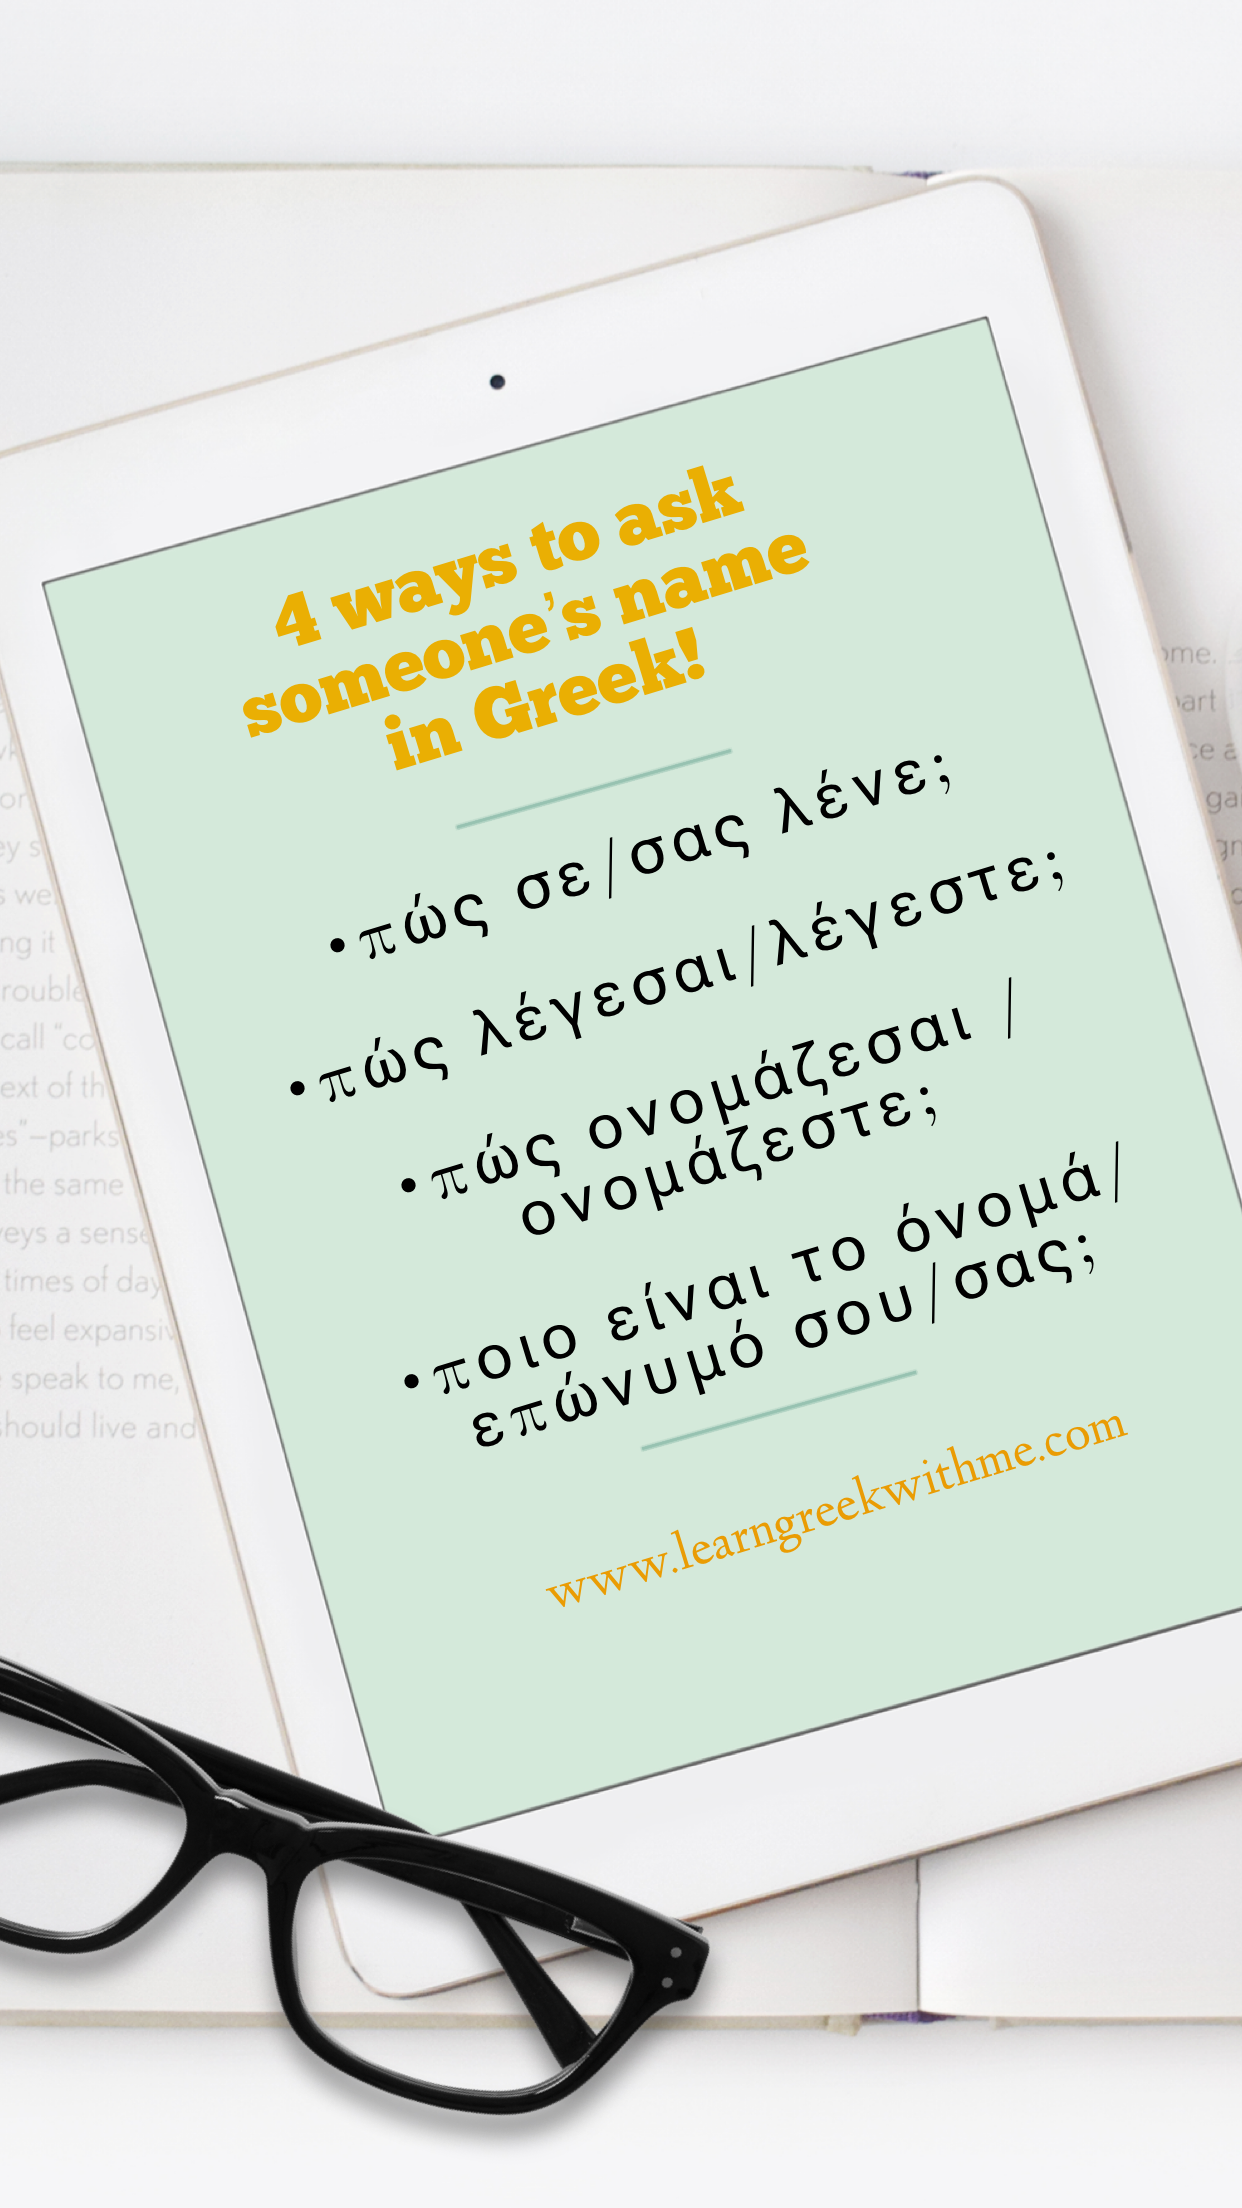 4 ways to ask someone's name in Greek